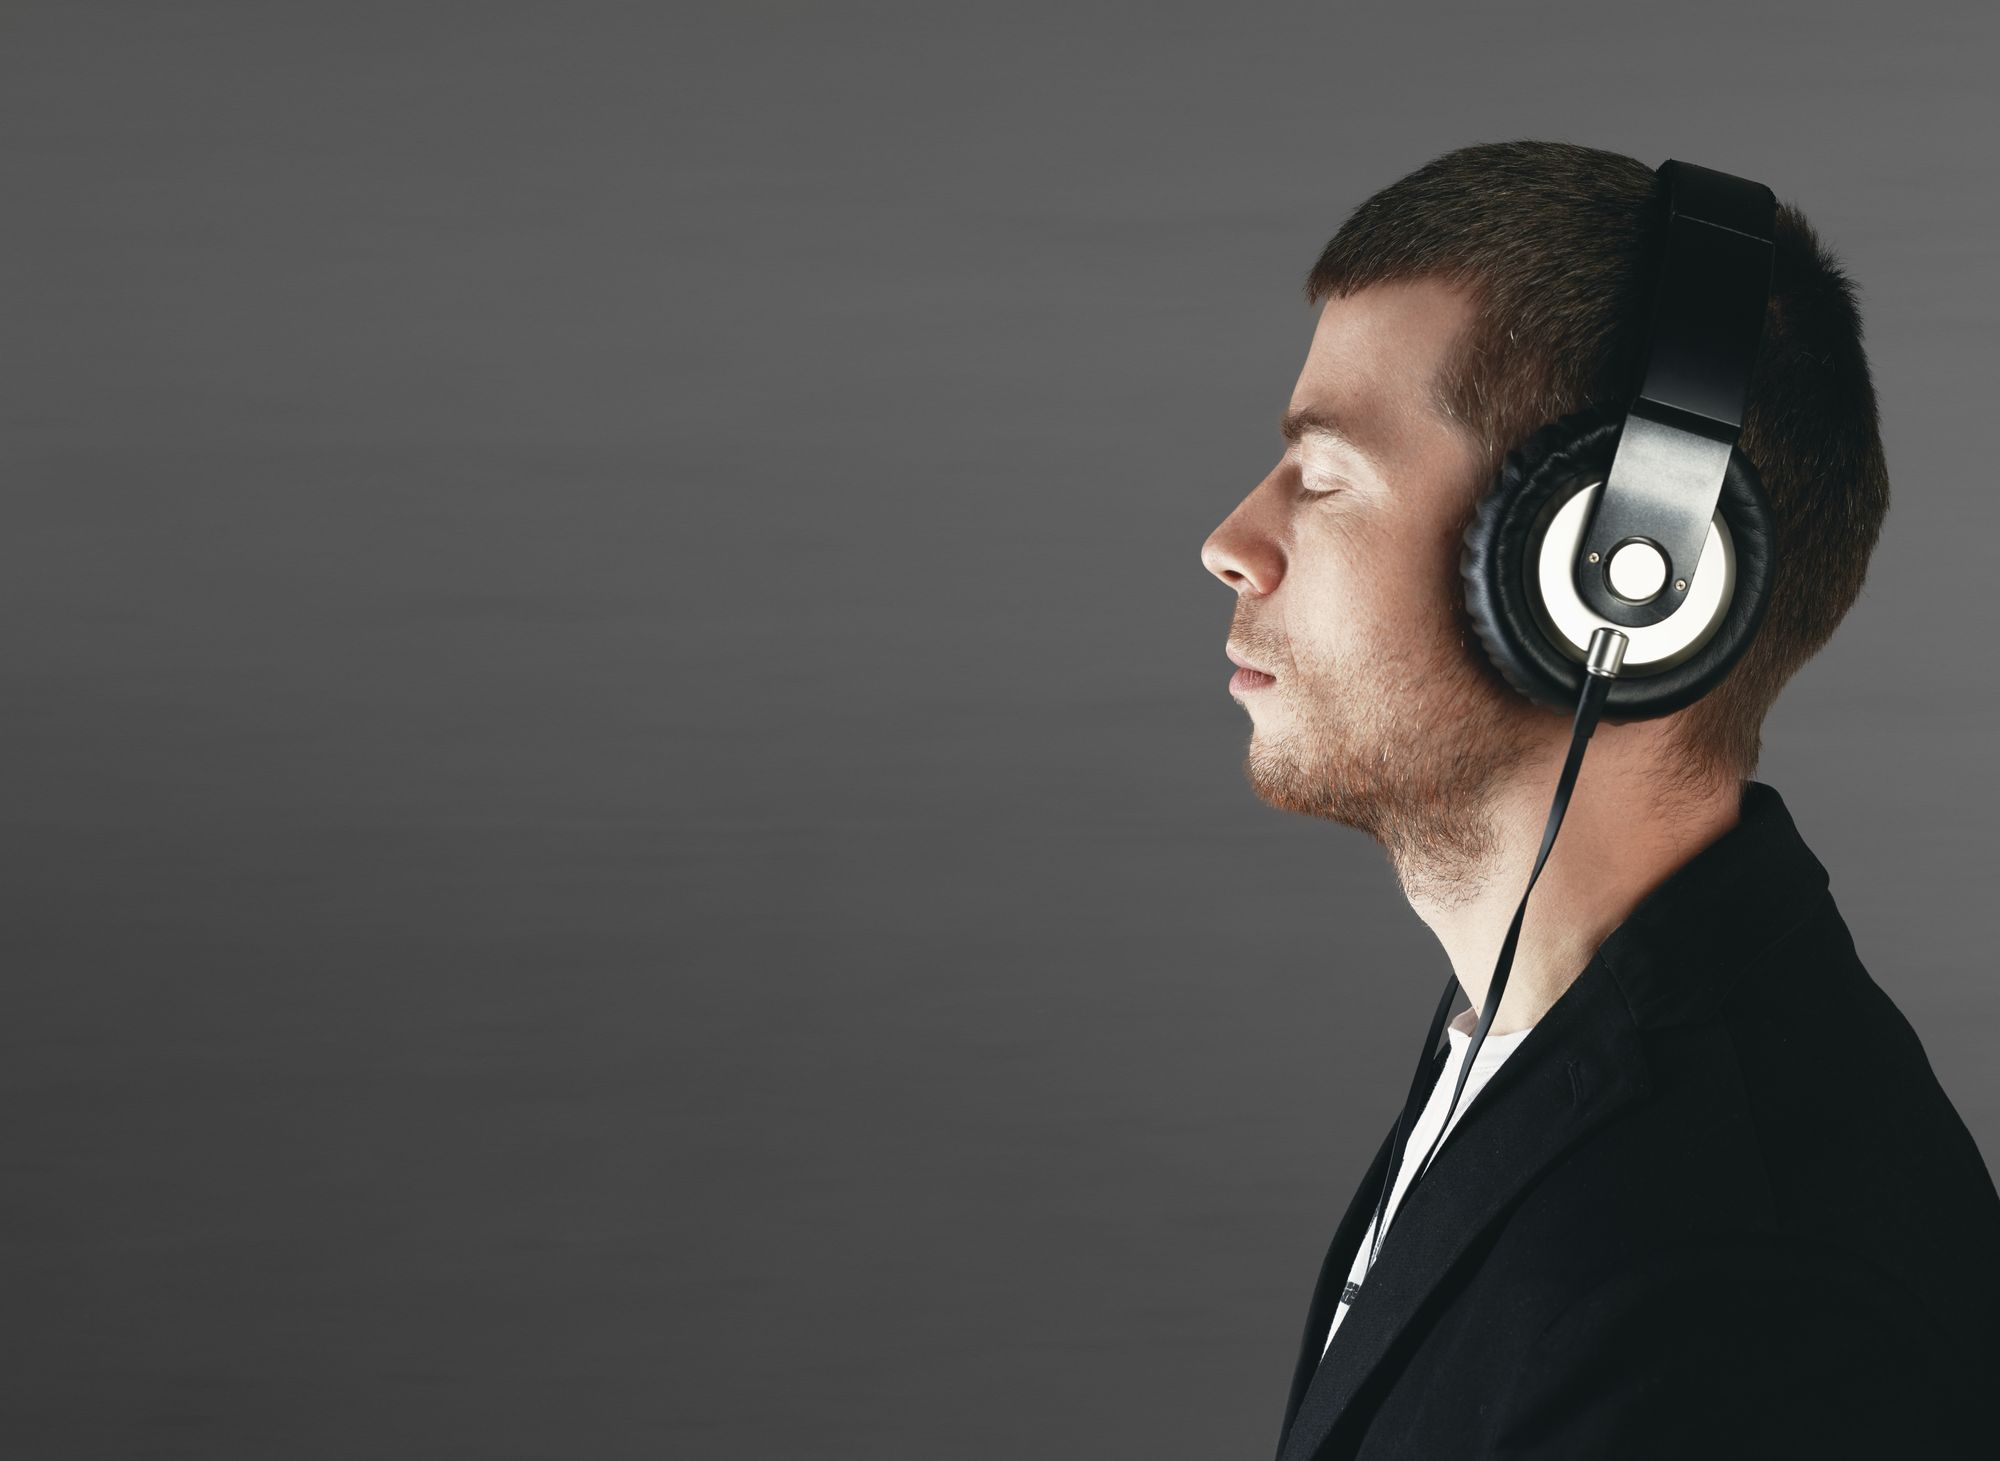 Man in headphones listening to mental practice recordings.